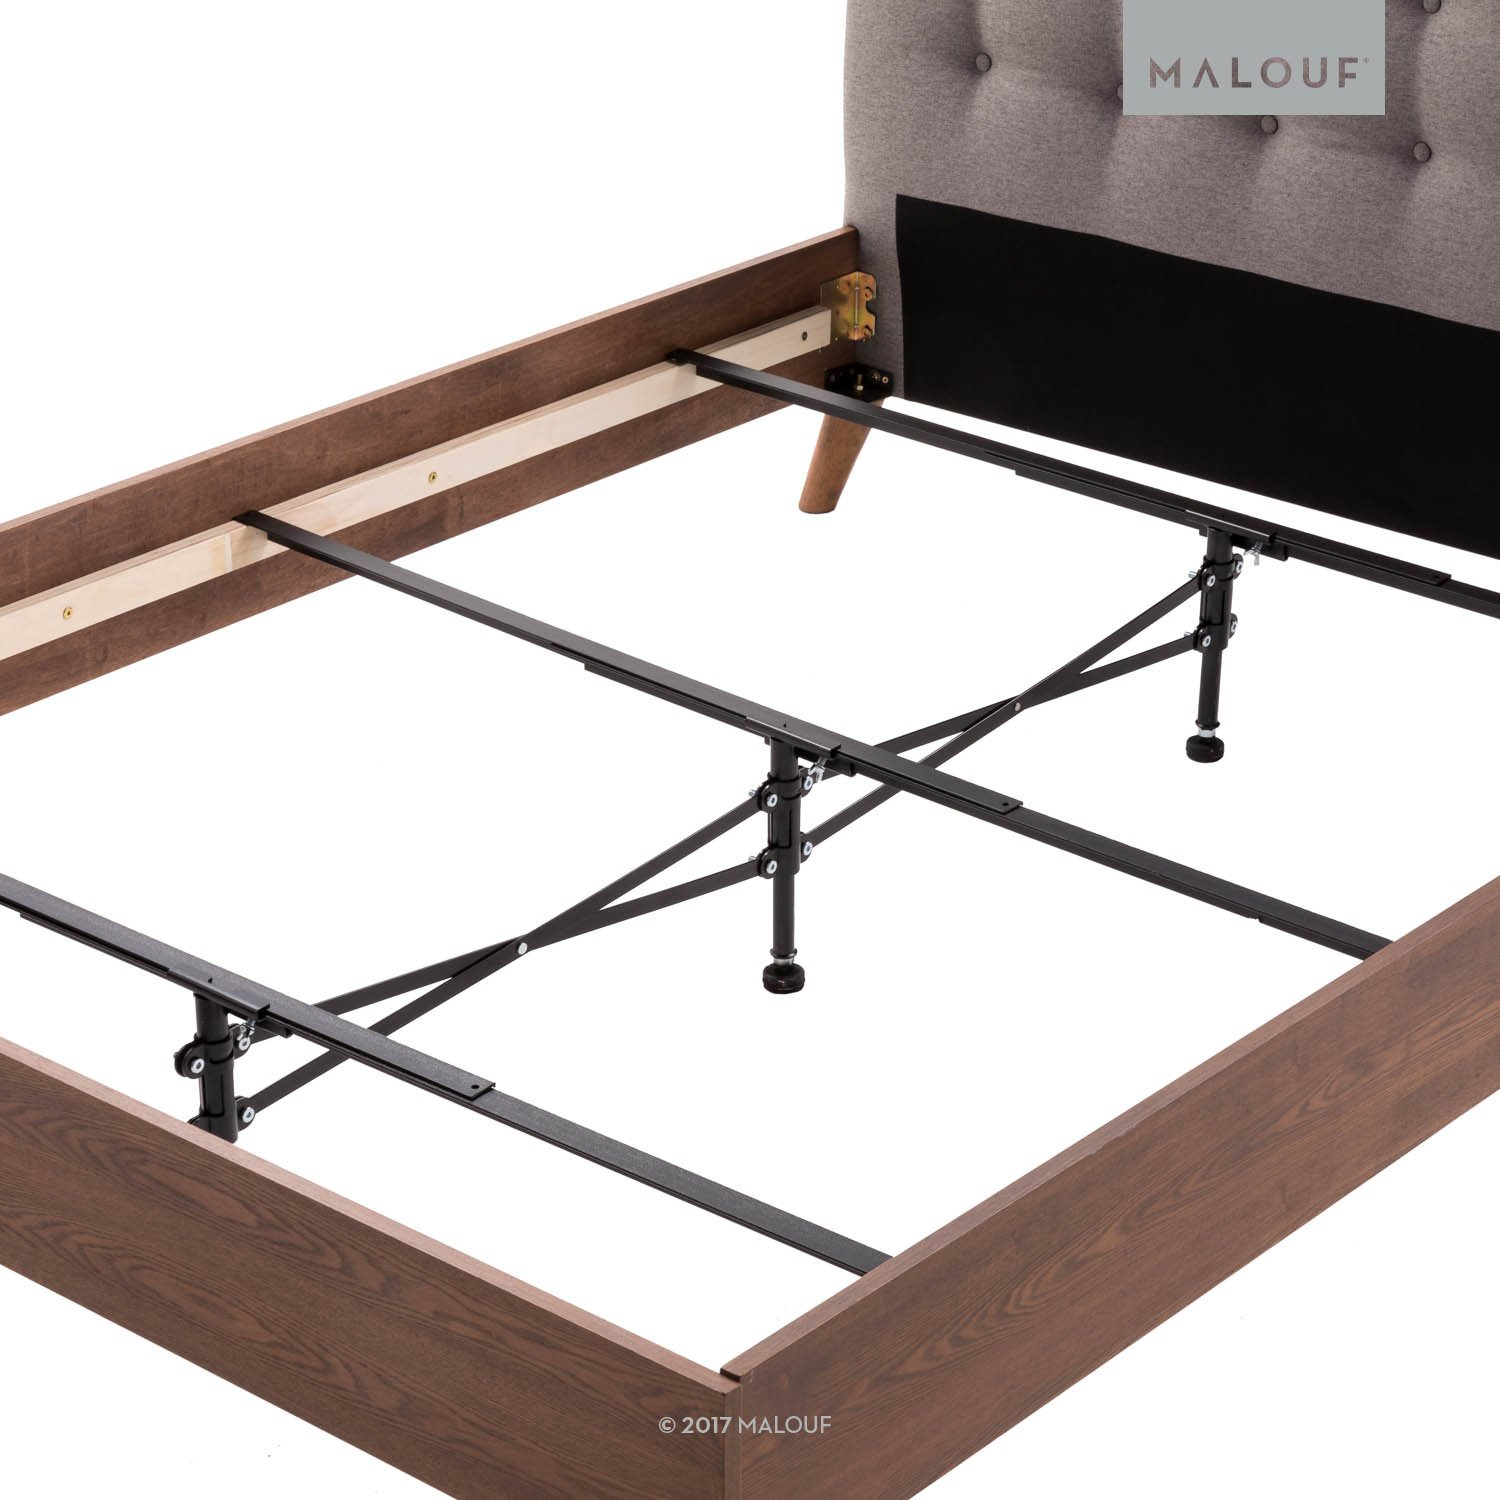 Structures Adjustable Center Support System For Bed To Replace